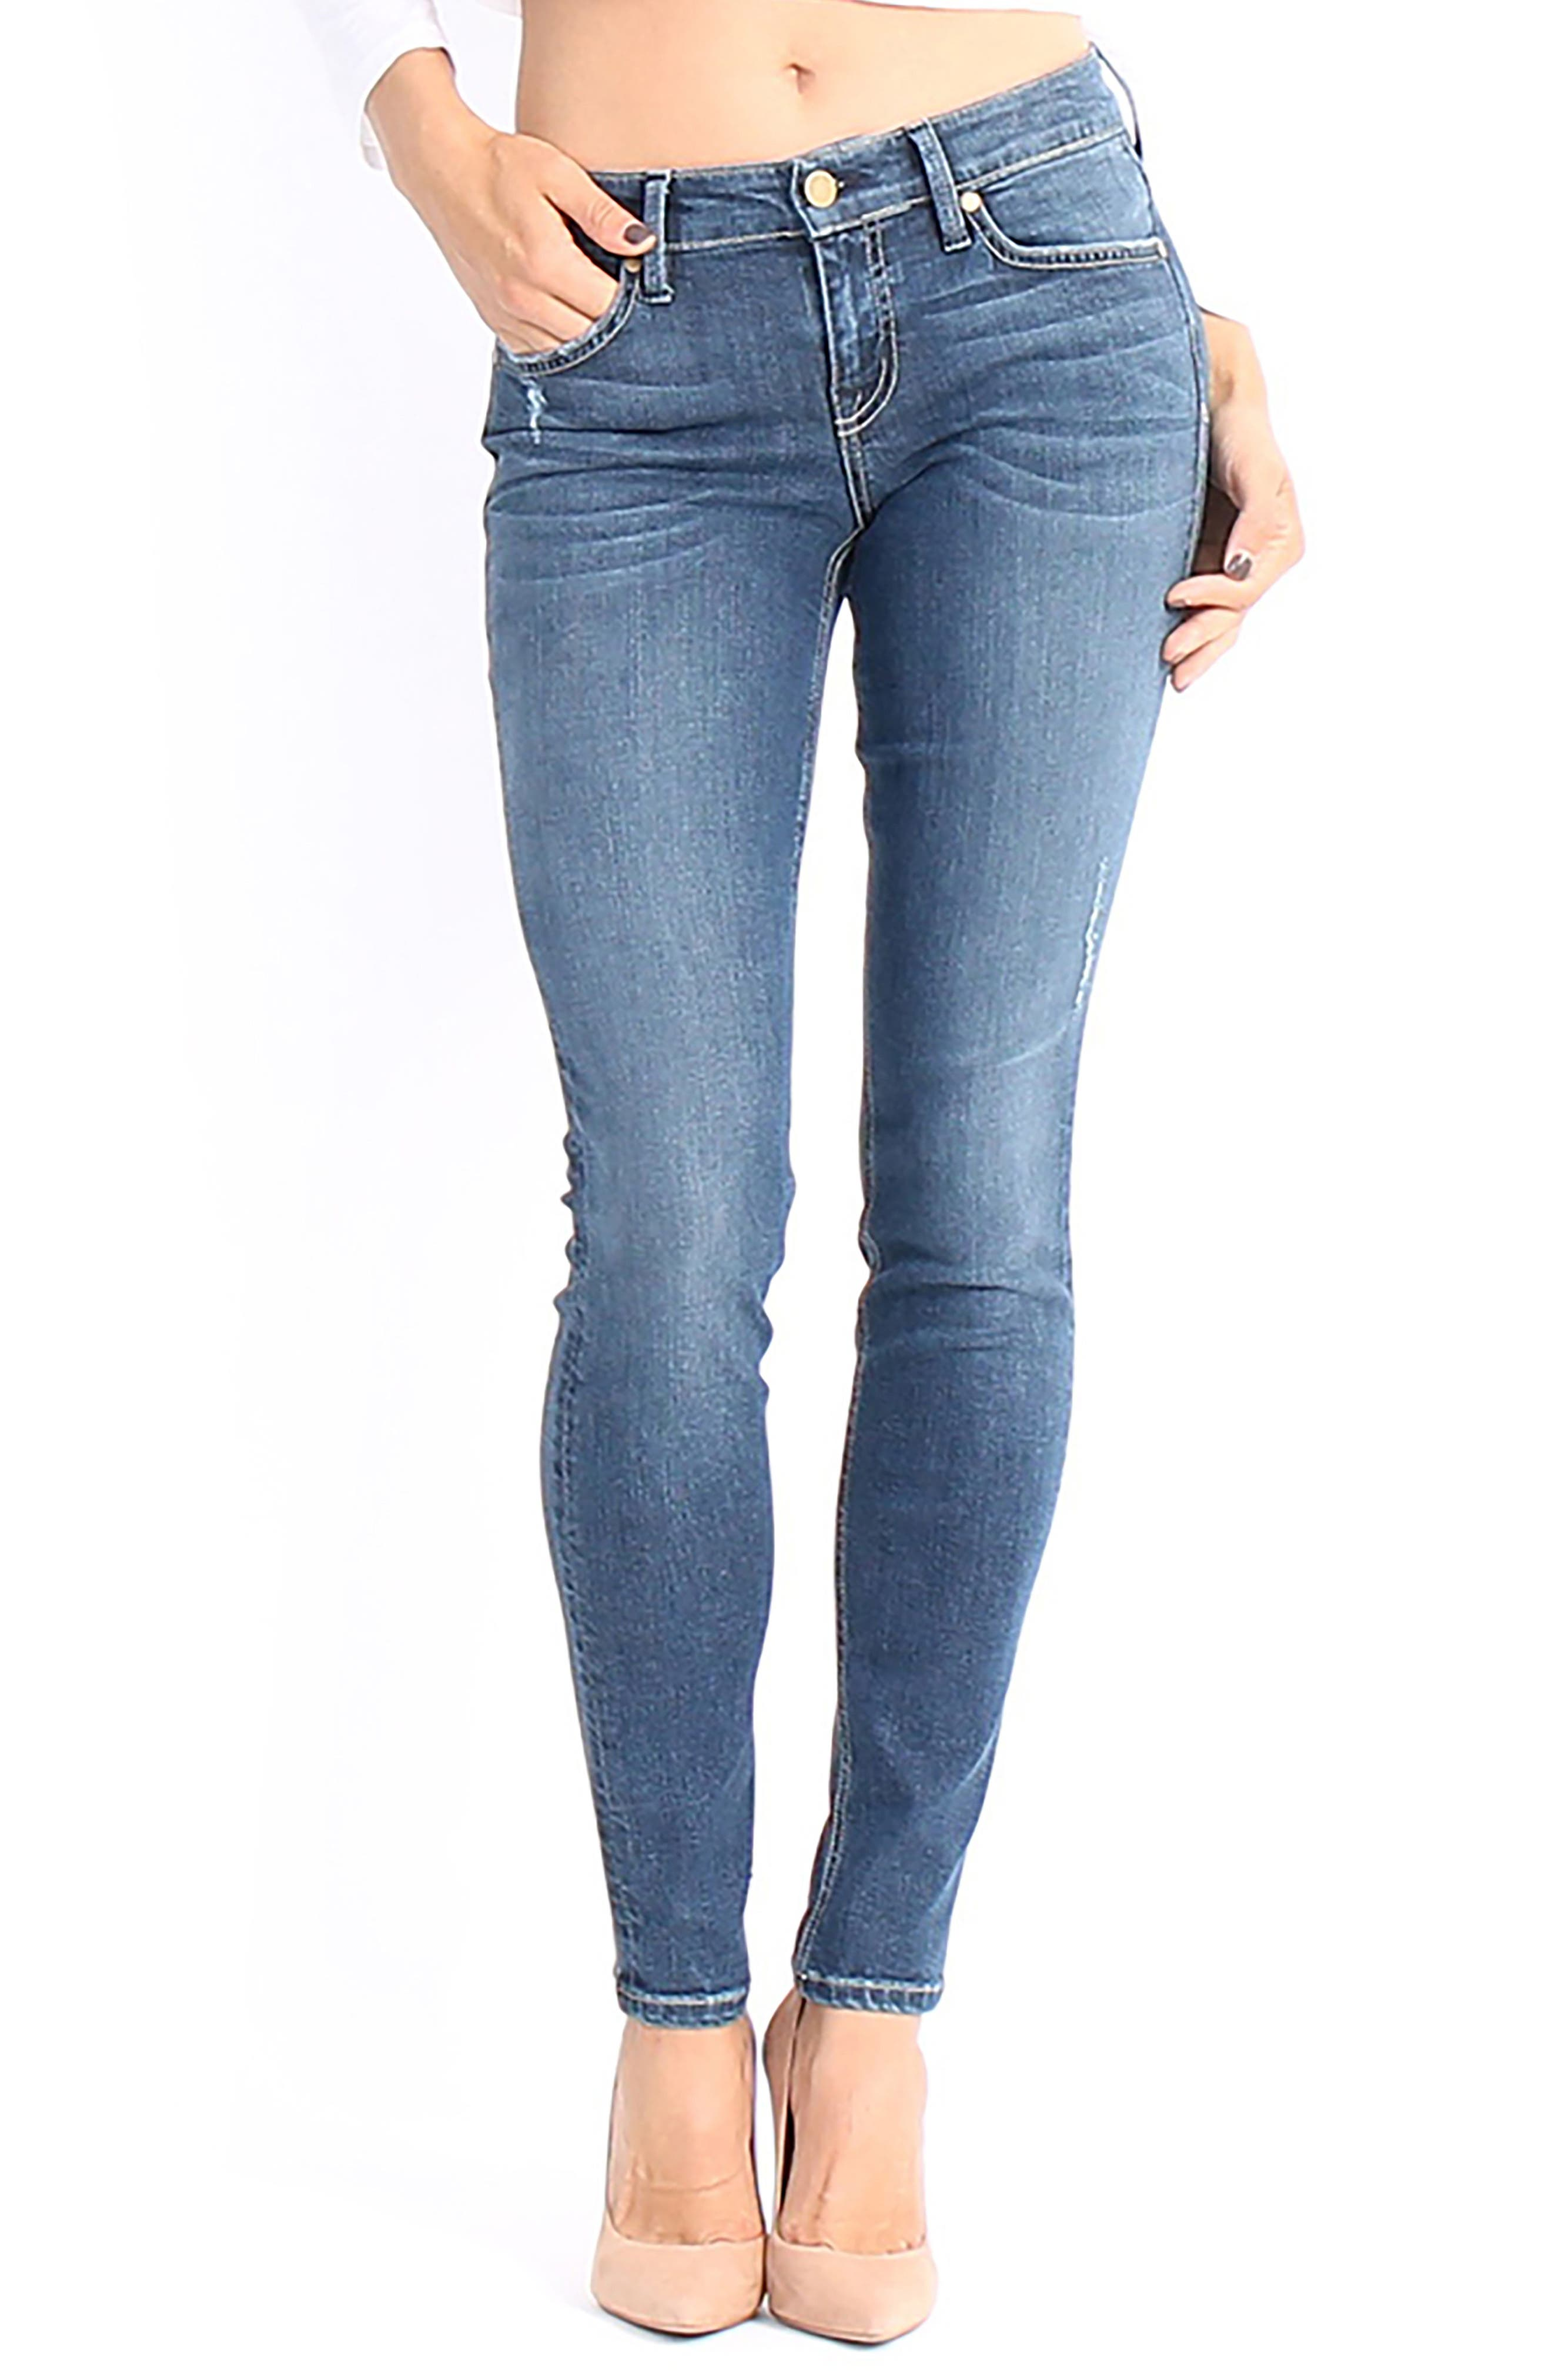 Main Image - Level 99 Lisa Stretch Distressed Super Skinny Jeans